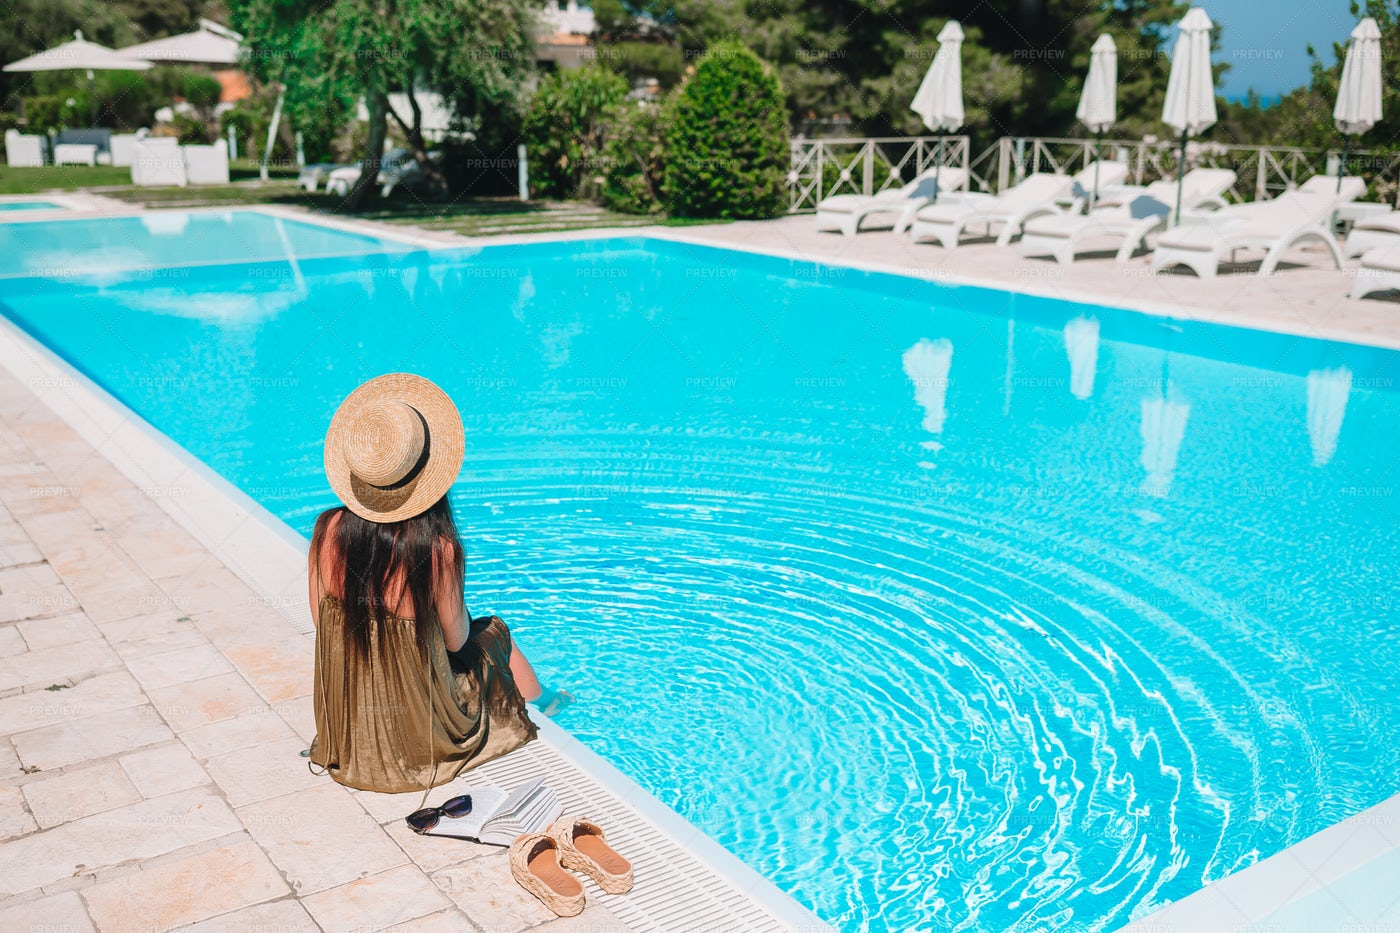 Woman Relaxing By The Pool: Stock Photos